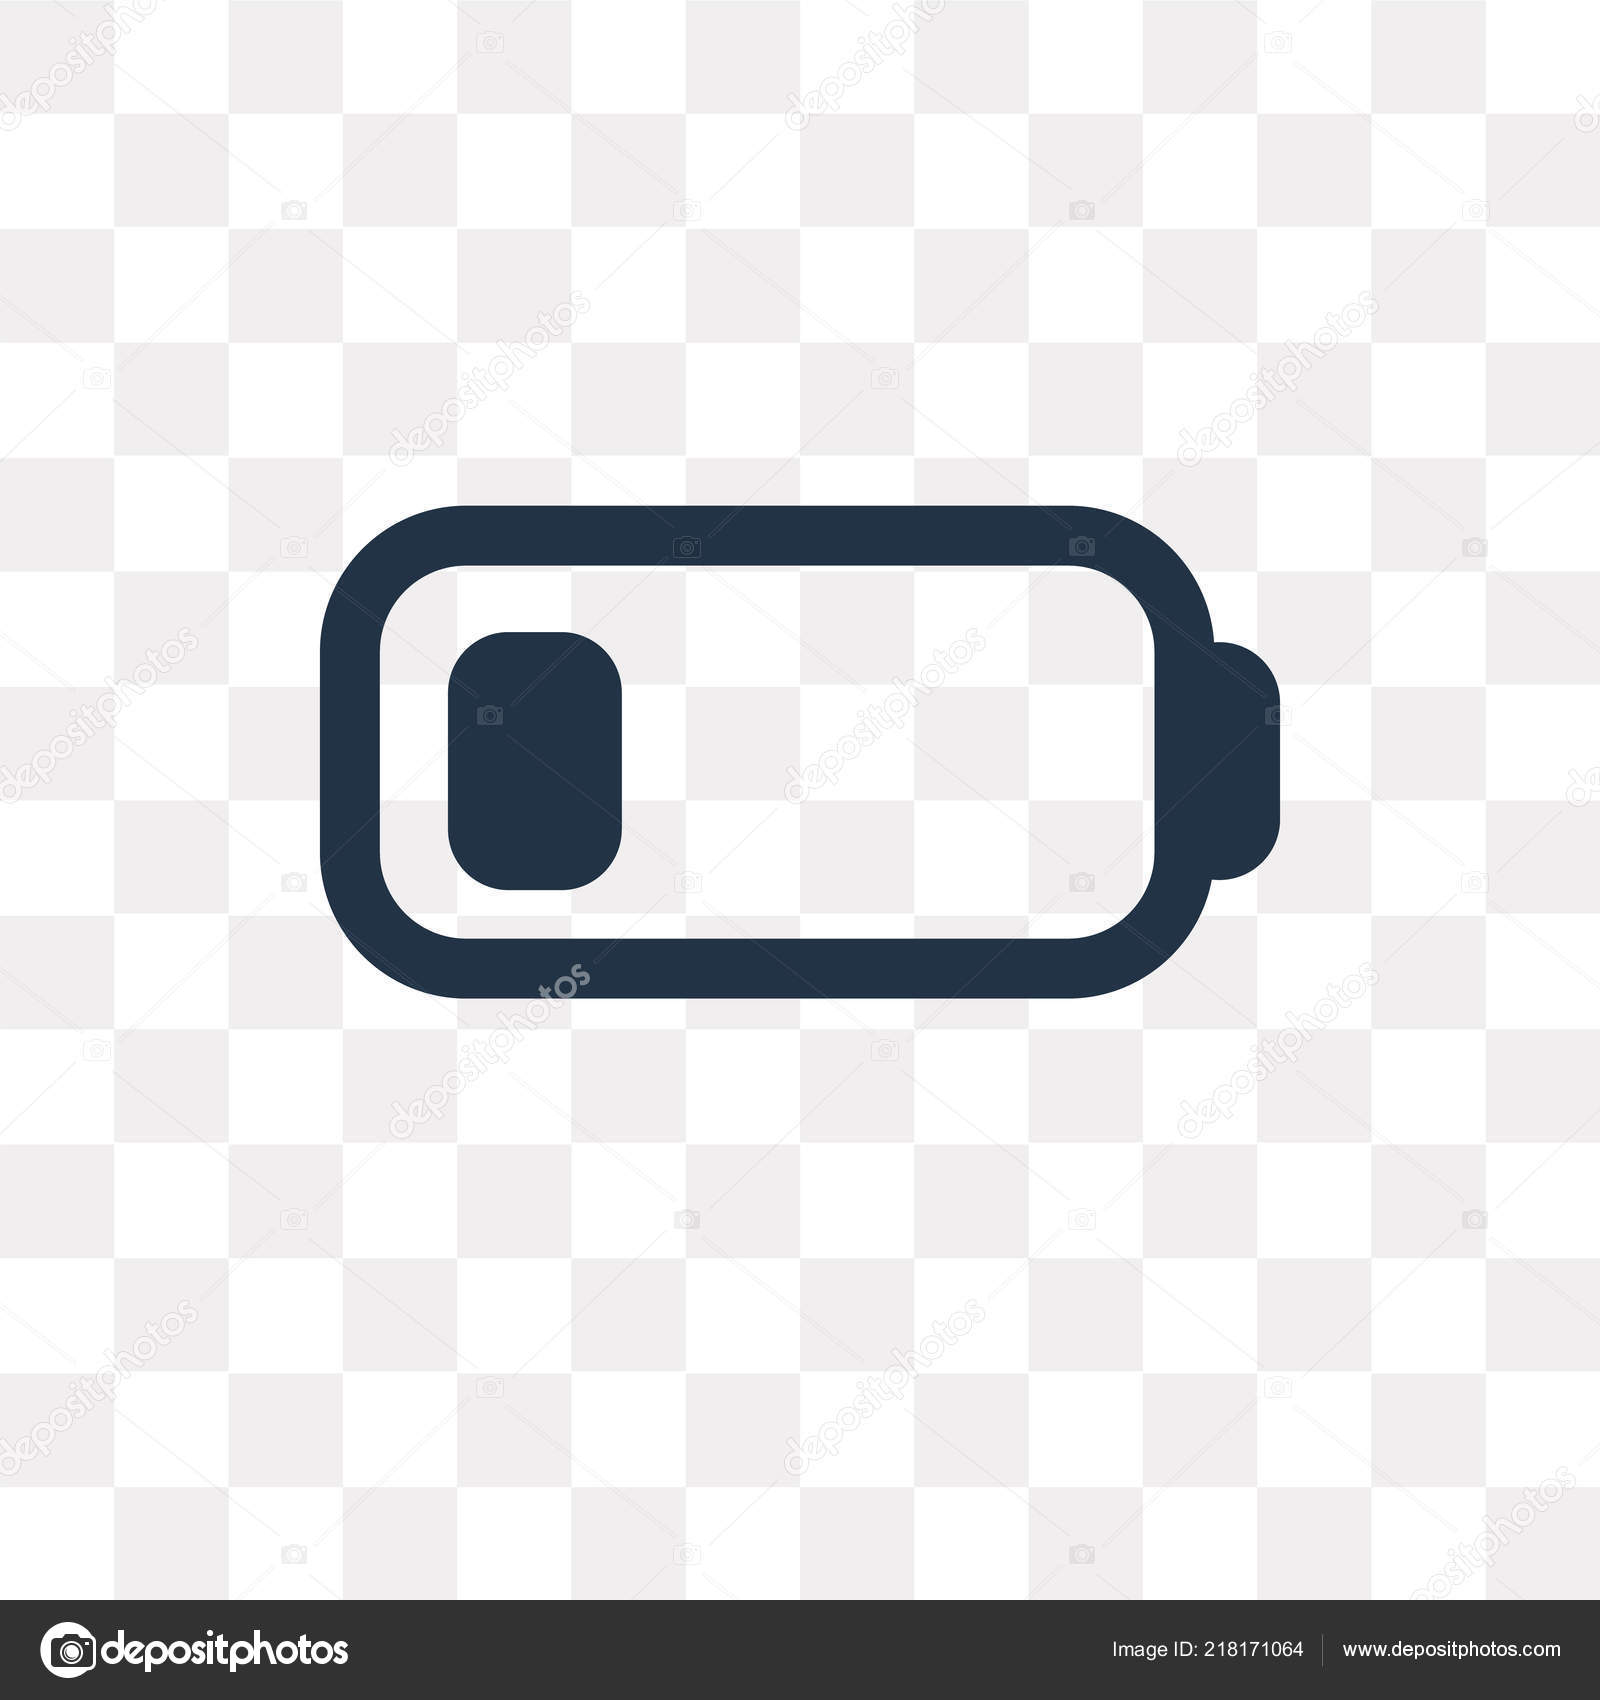 background battery transparent low battery vector icon isolated transparent background low battery transparency stock vector c mmvector 218171064 https depositphotos com 218171064 stock illustration low battery vector icon isolated html